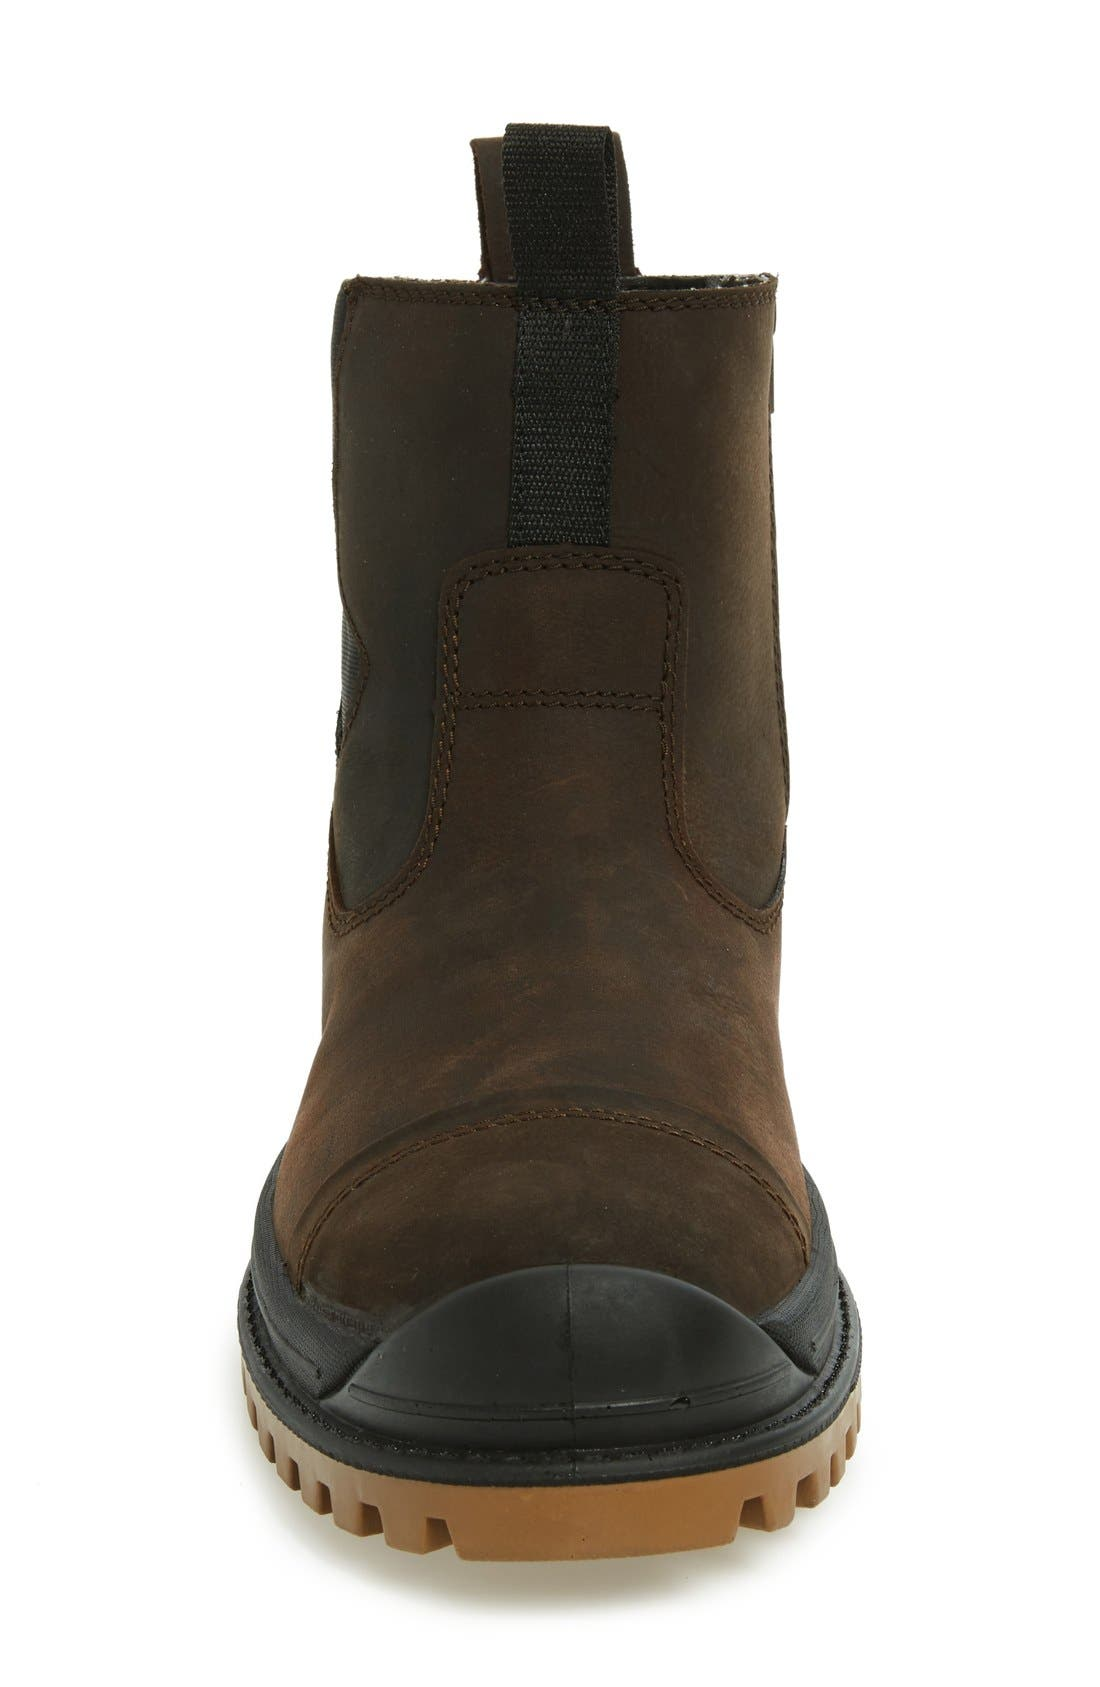 Griffon Snow Boot,                             Alternate thumbnail 3, color,                             Dark Brown Leather